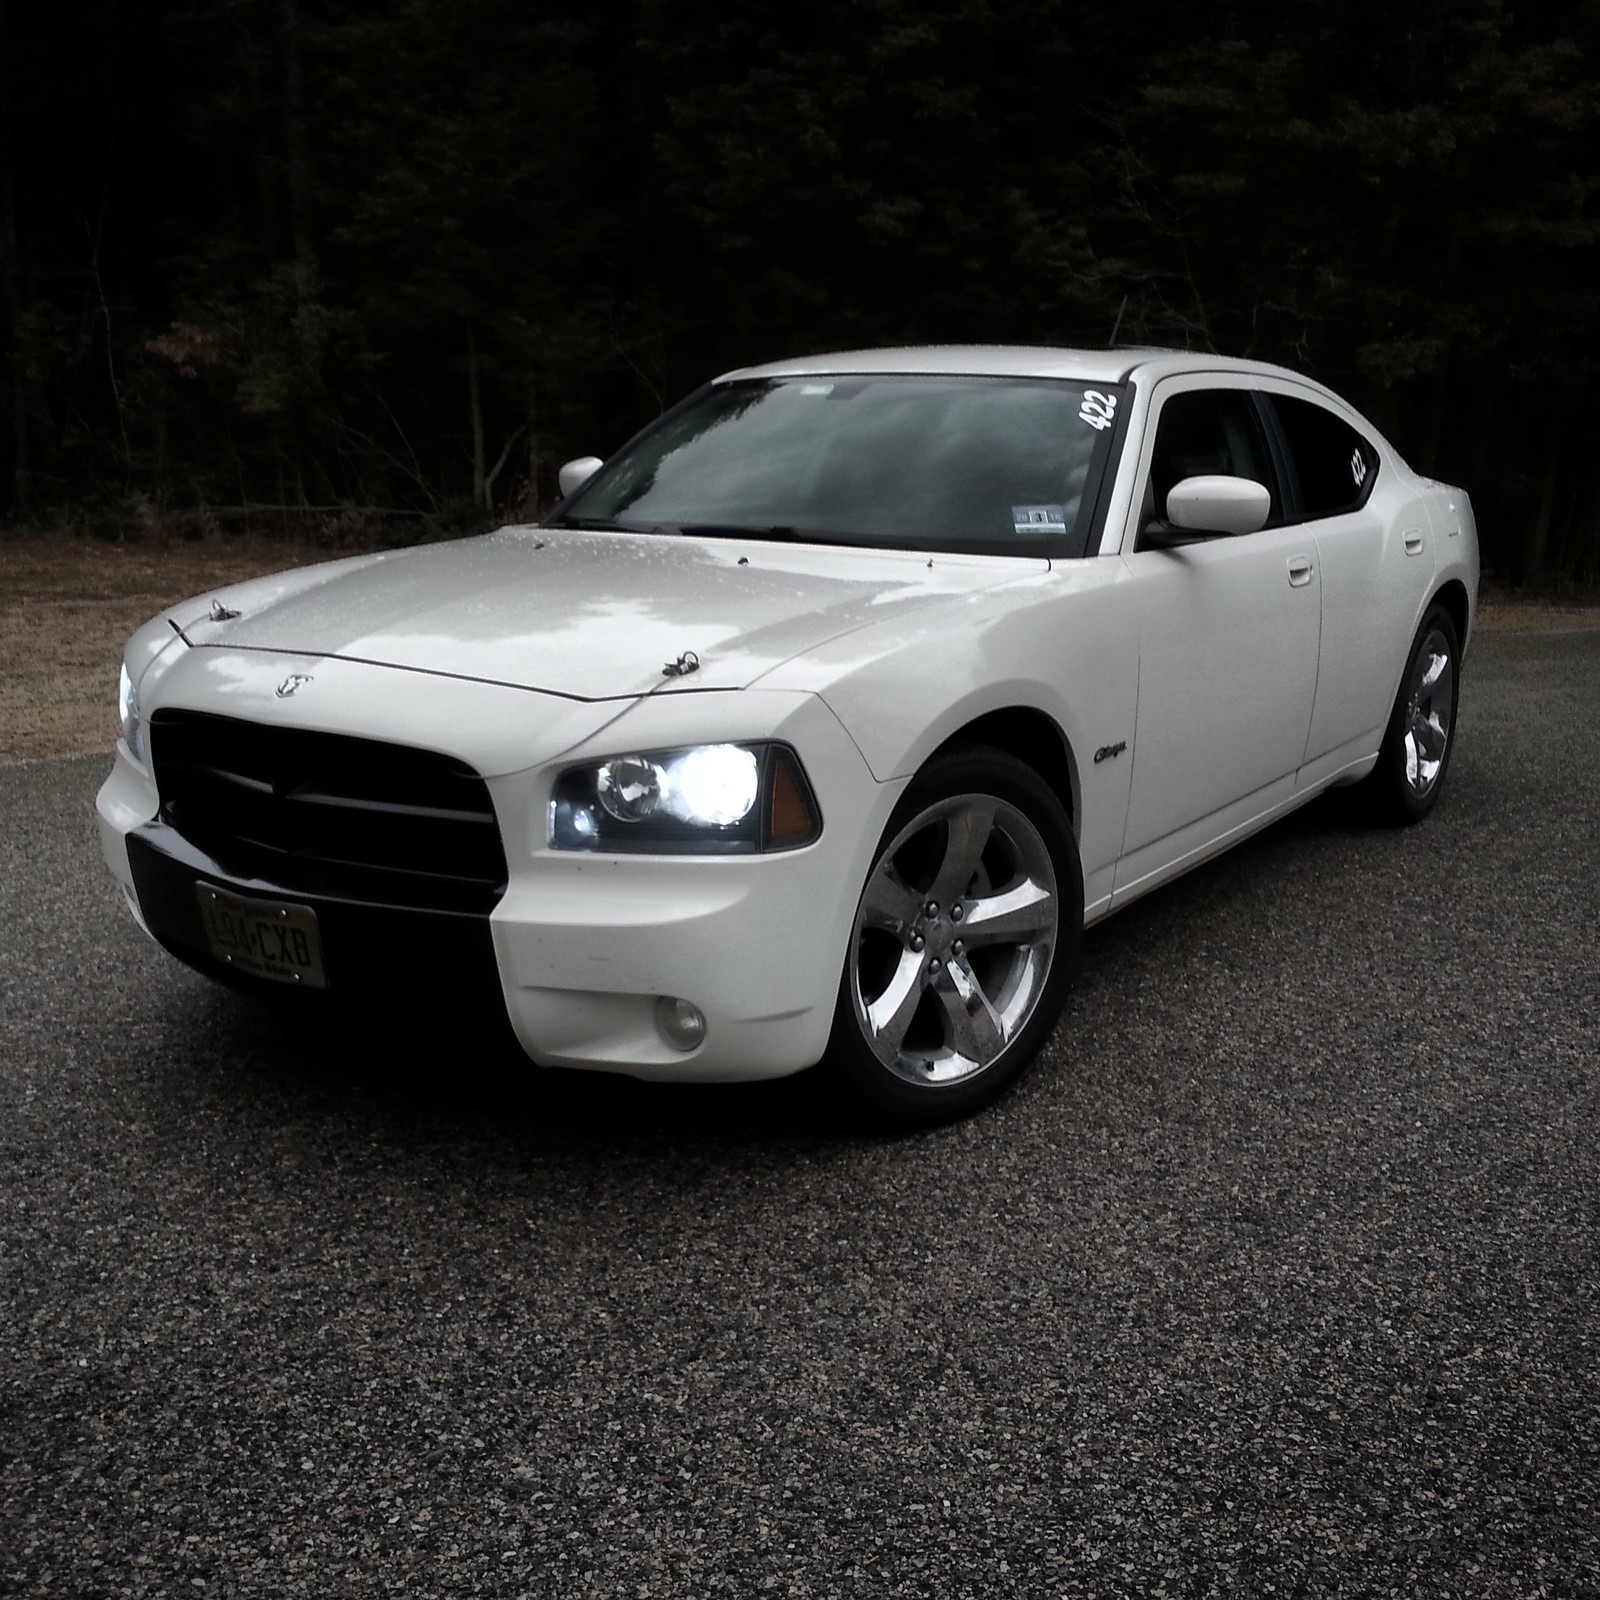 2007 dodge charger rt 0-60